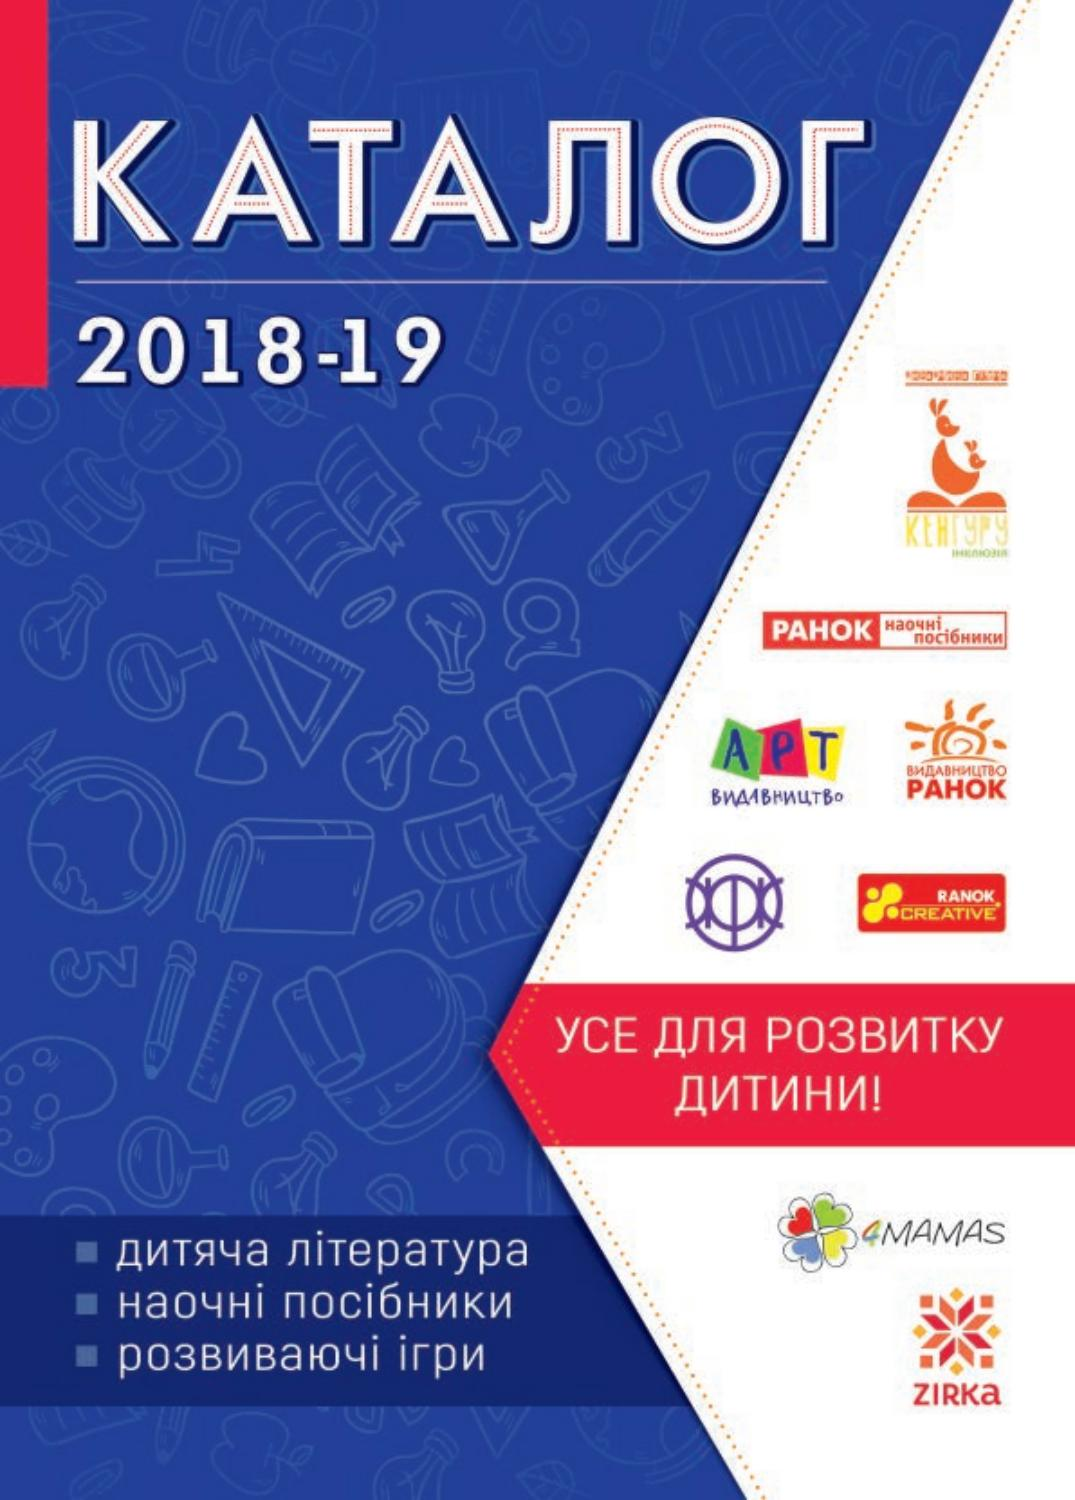 Каталог корпоративный 2018-2019 by ranok-creative - issuu 53c68f8a959b4